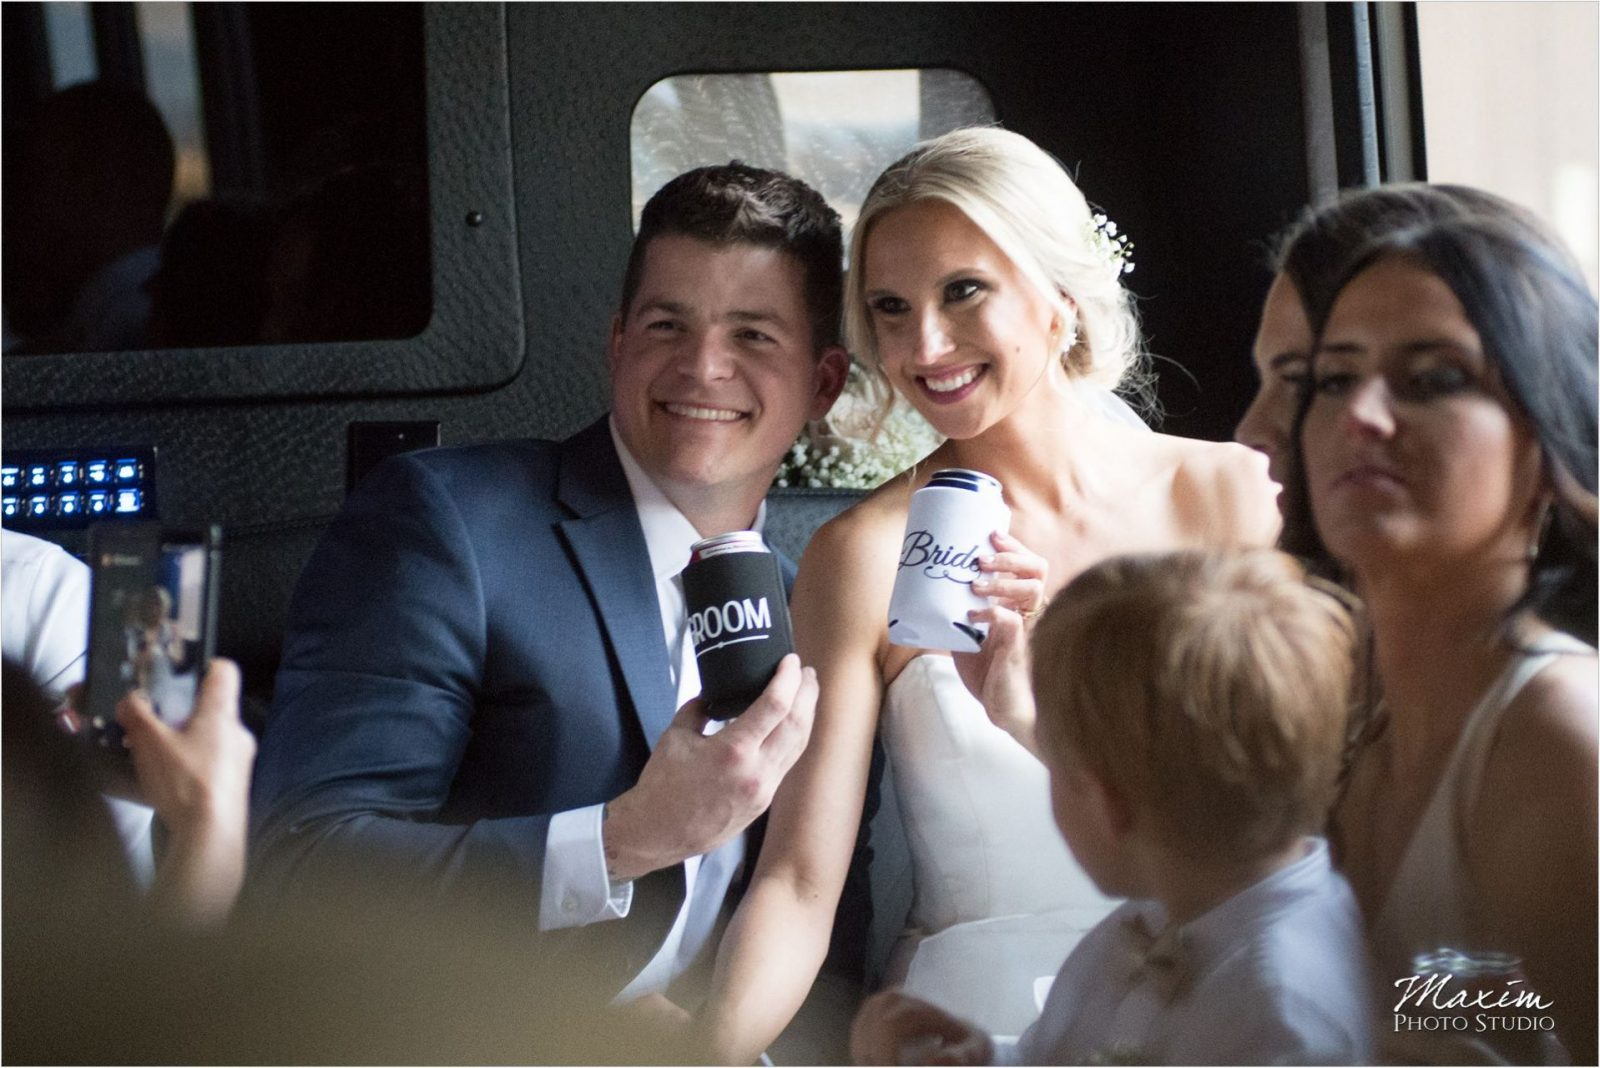 The Phoenix Cincinnati Bride Groom Party Bus